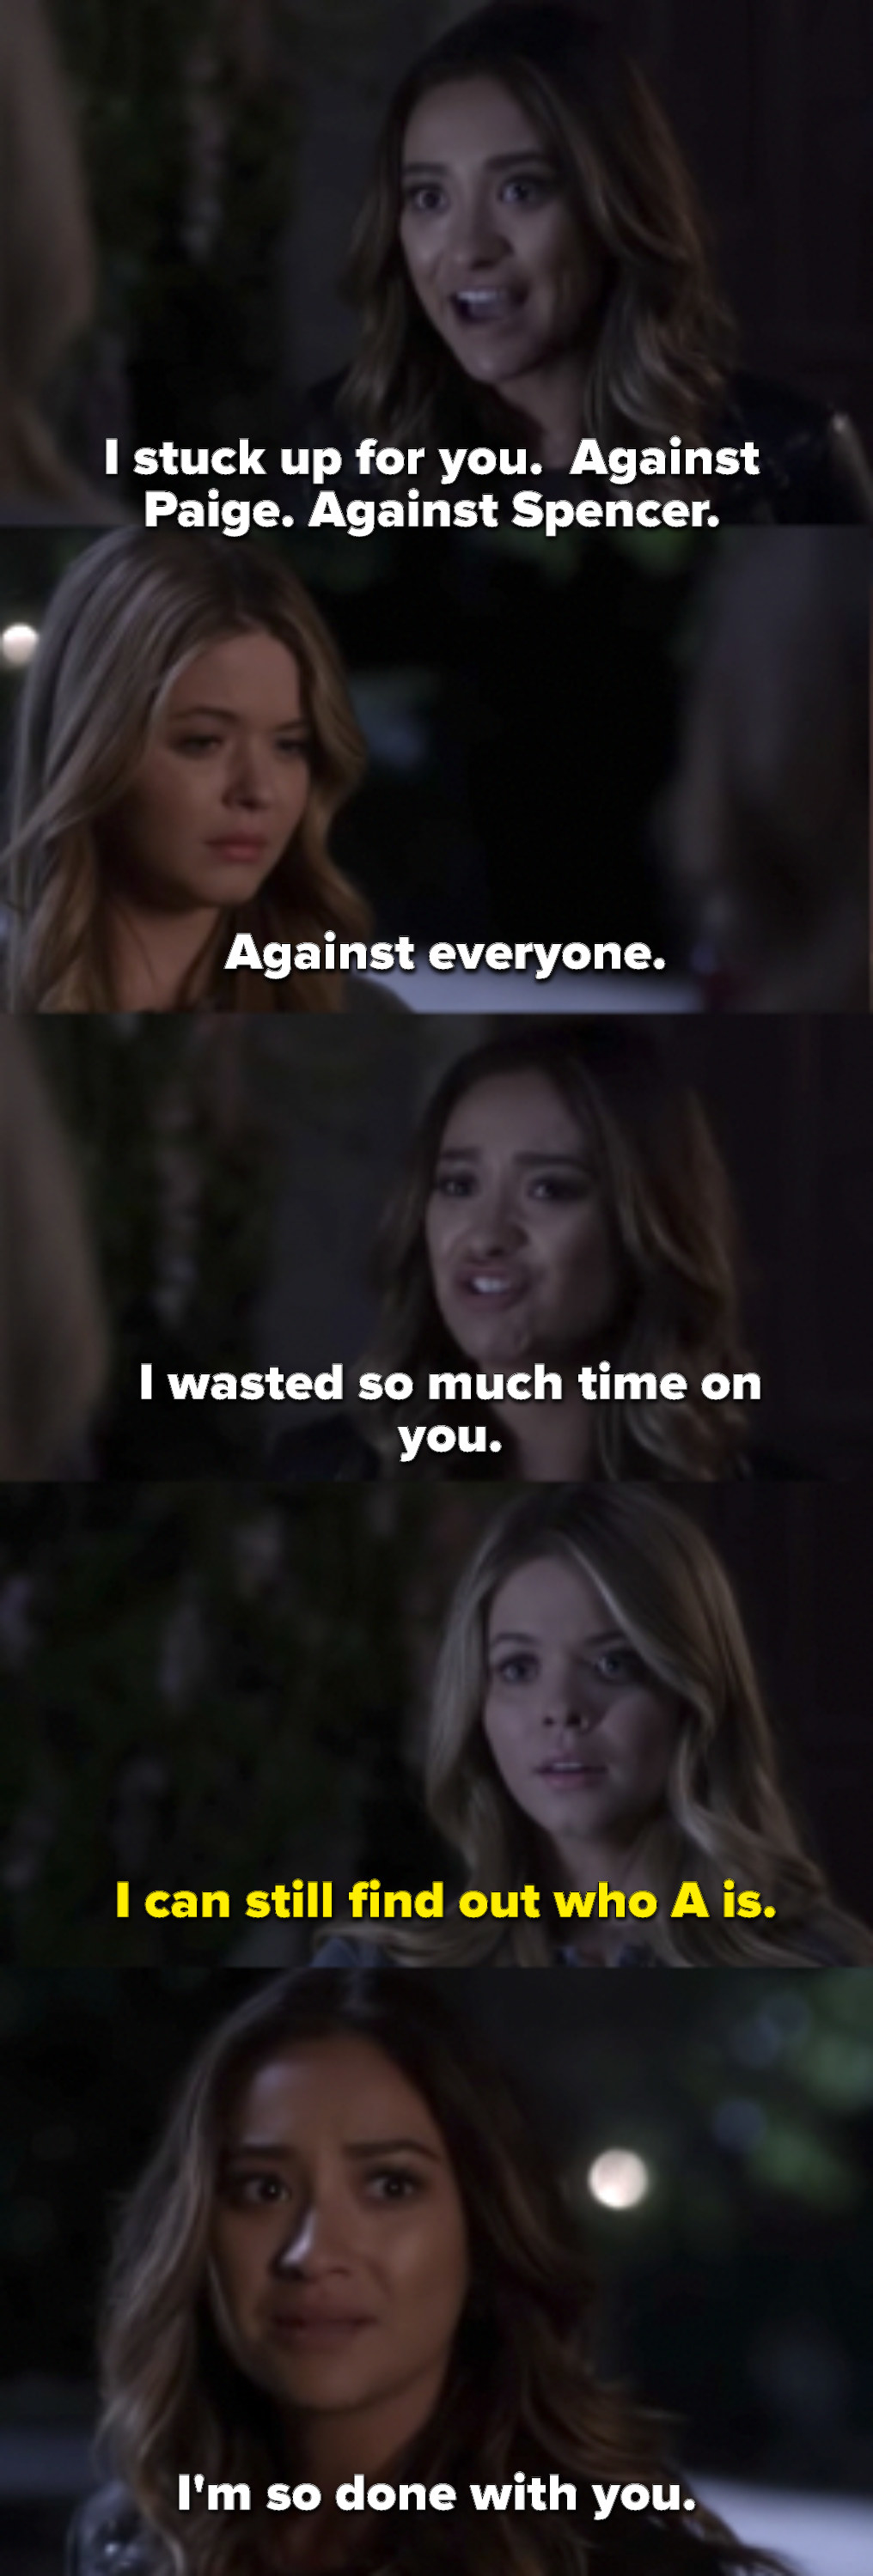 Emily says she's done with sticking up for Ali and that she wasted time on her.